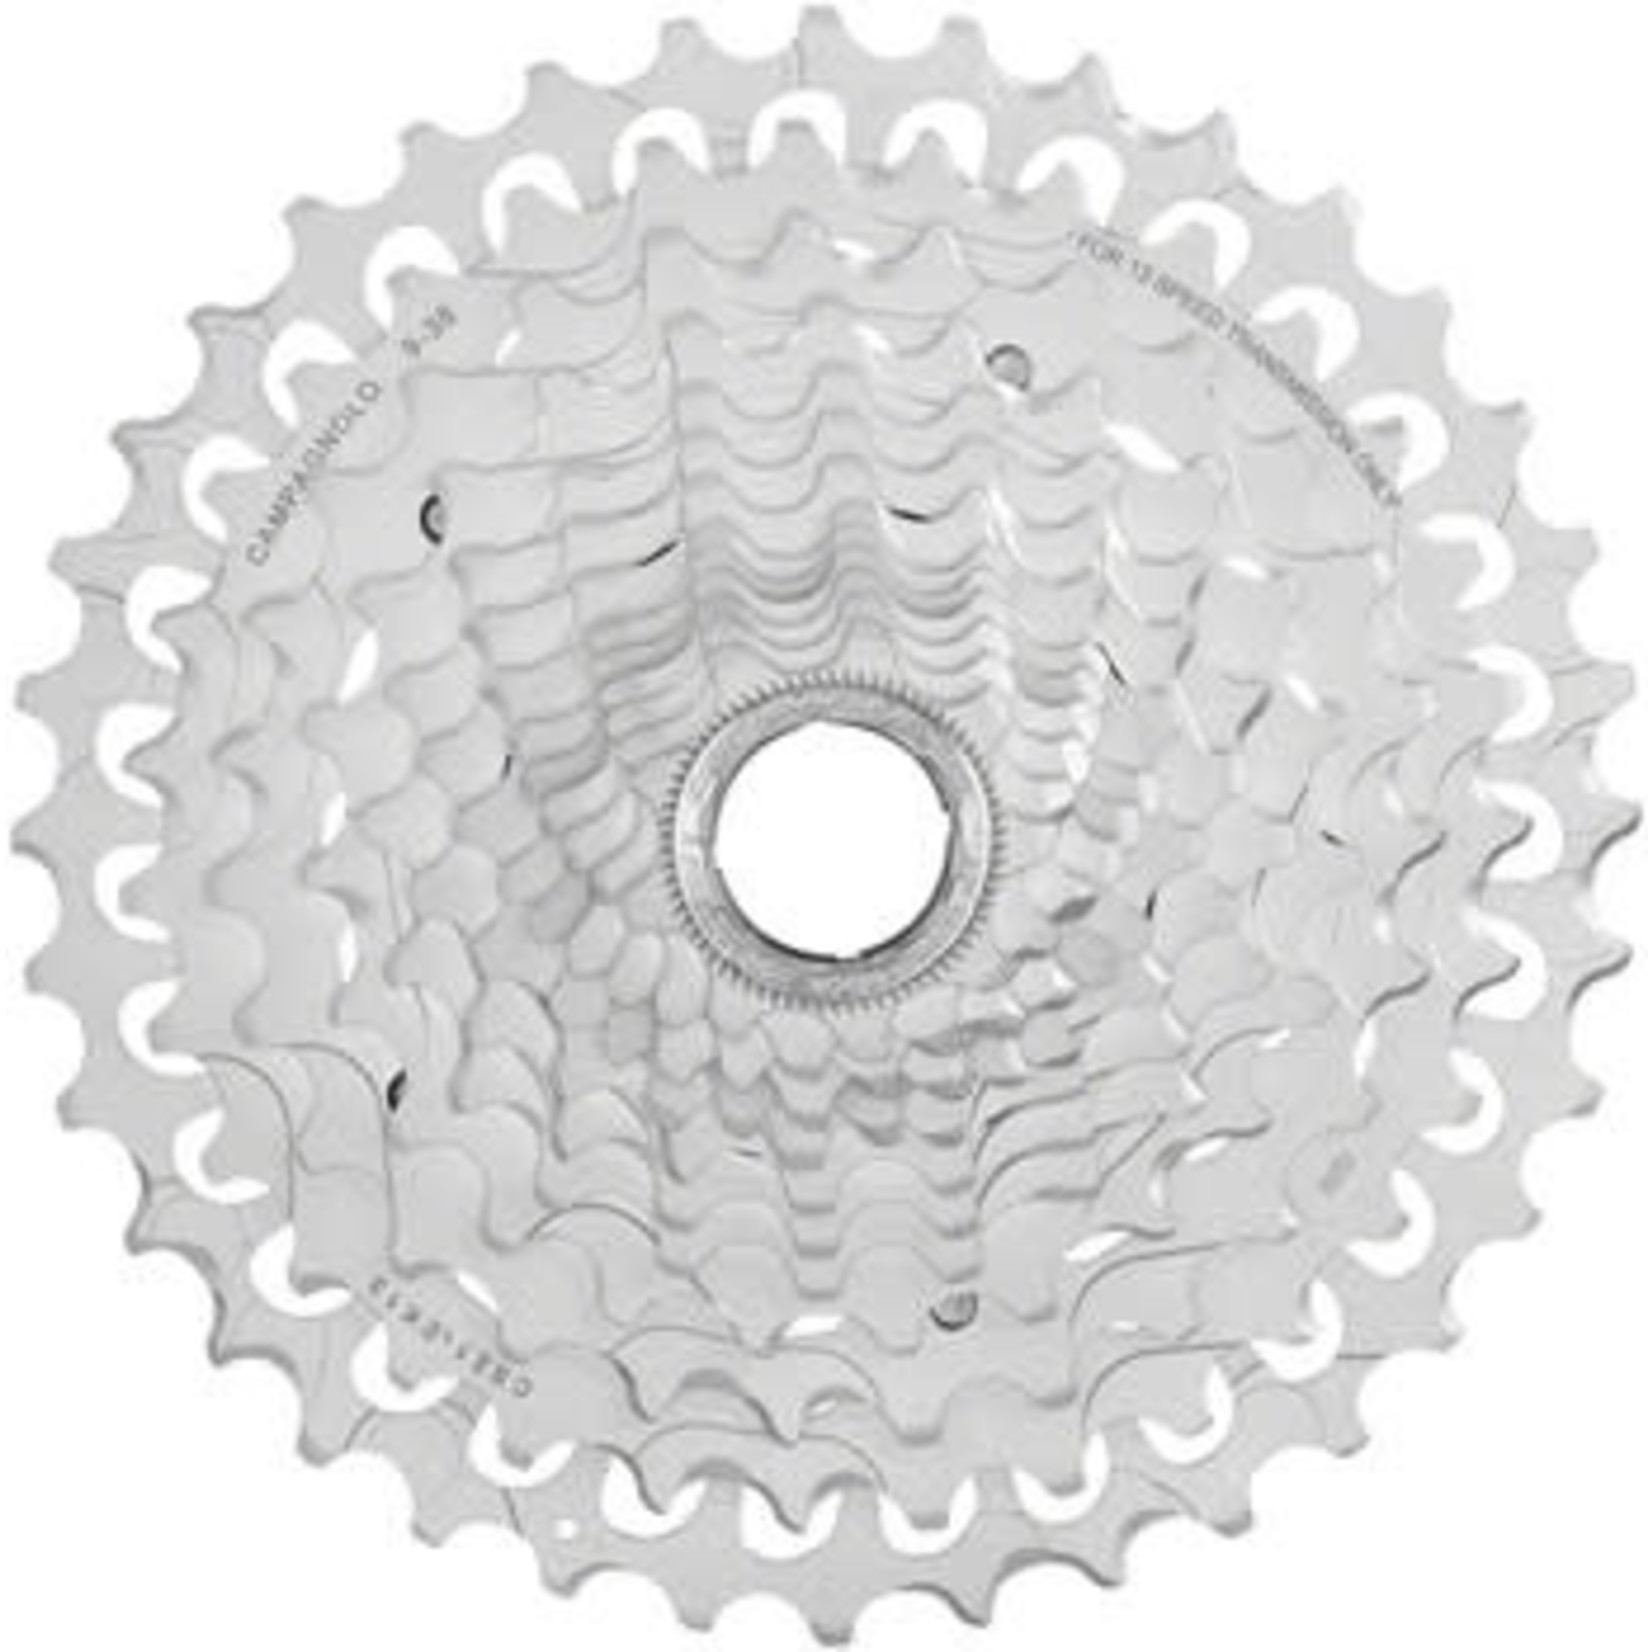 Campagnolo Campagnolo EKAR Cassette - 13-Speed, 9-36t, Silver, For N3W Driver Body